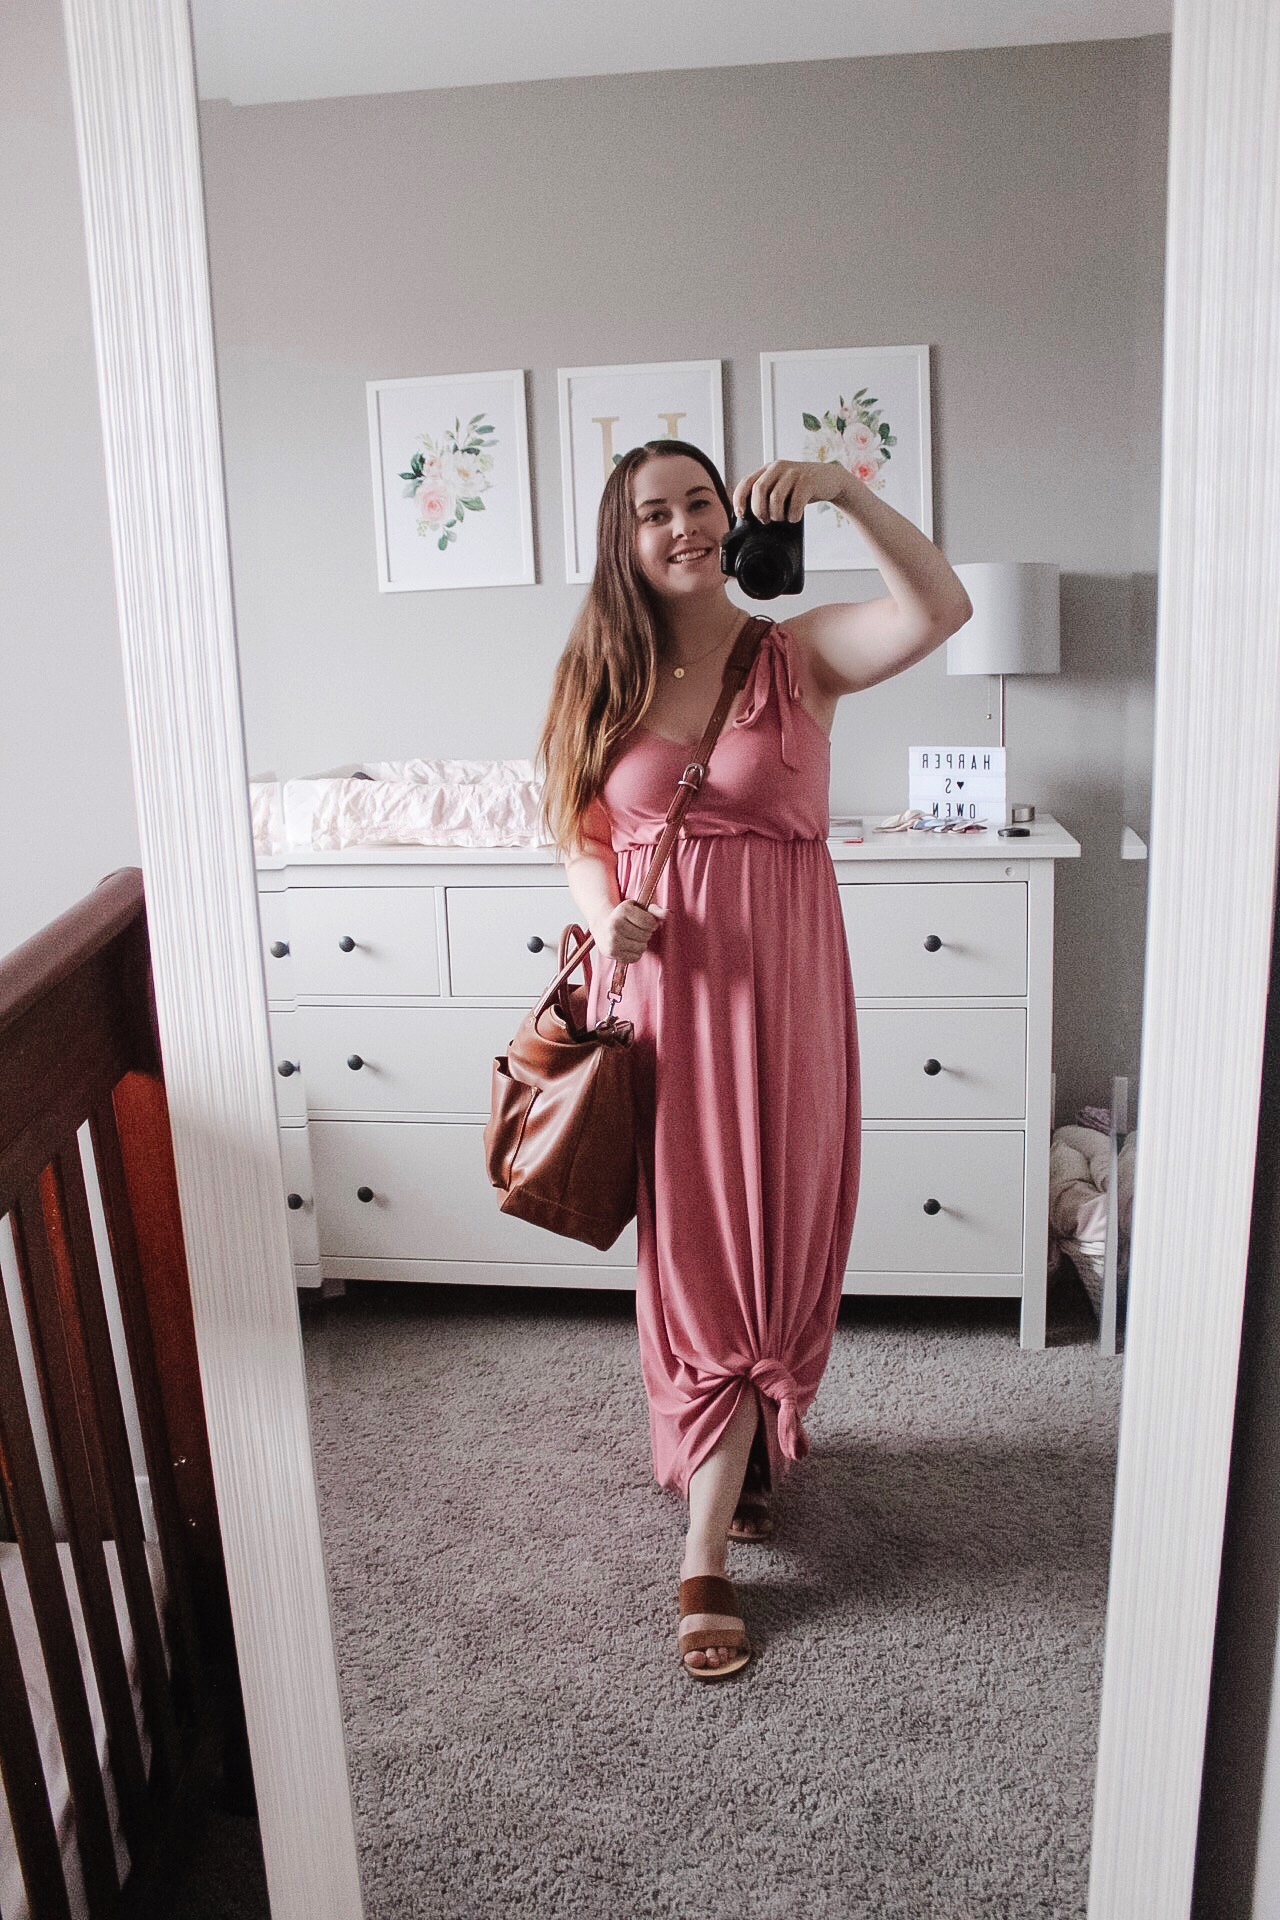 I tied the bottom, paired the dress with some brown slides and grabbed a diaper bag and this is a great casual look for everyday!